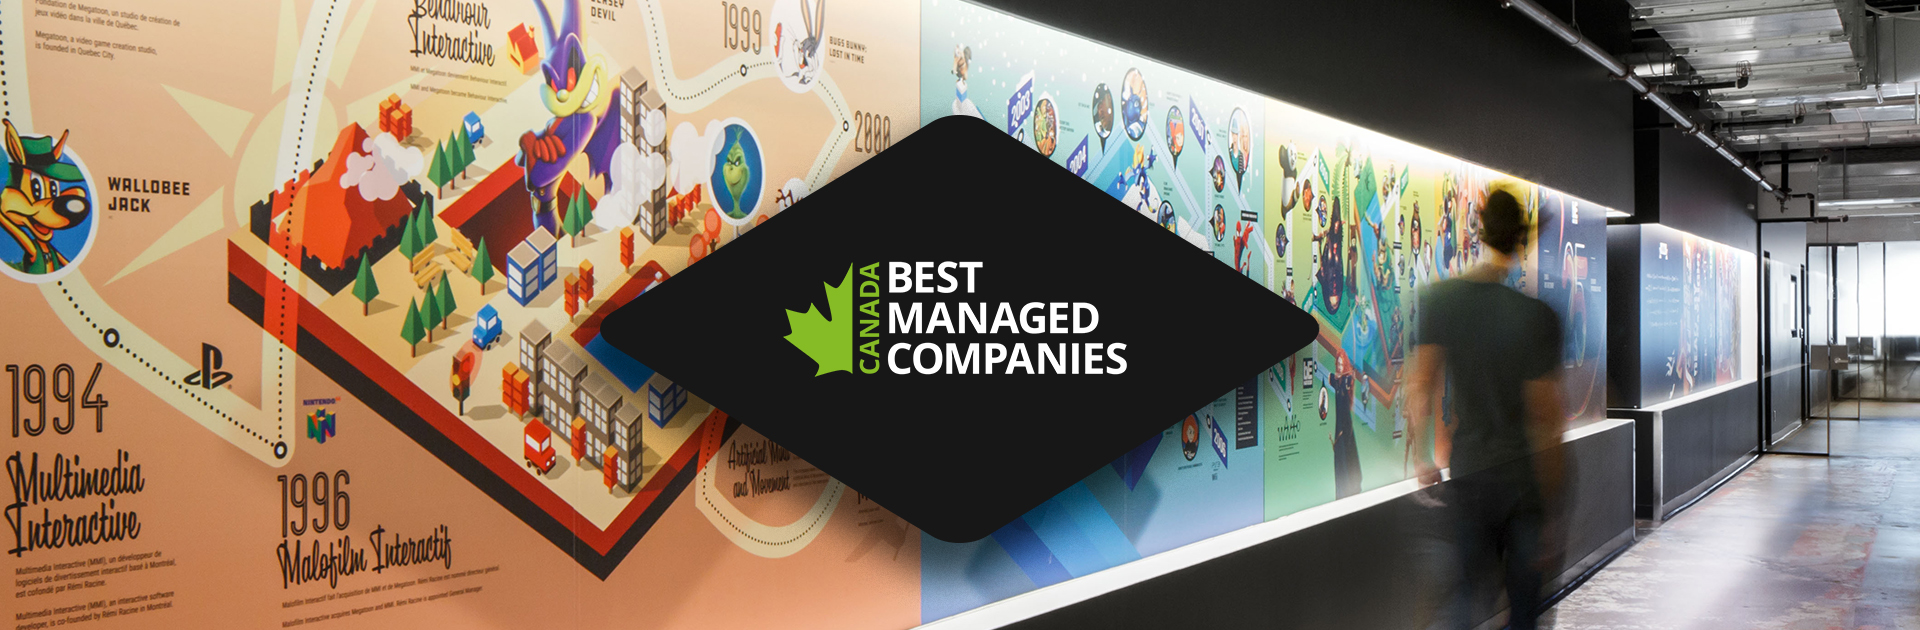 Behaviour reaffirmed among Canada's Best Managed Companies